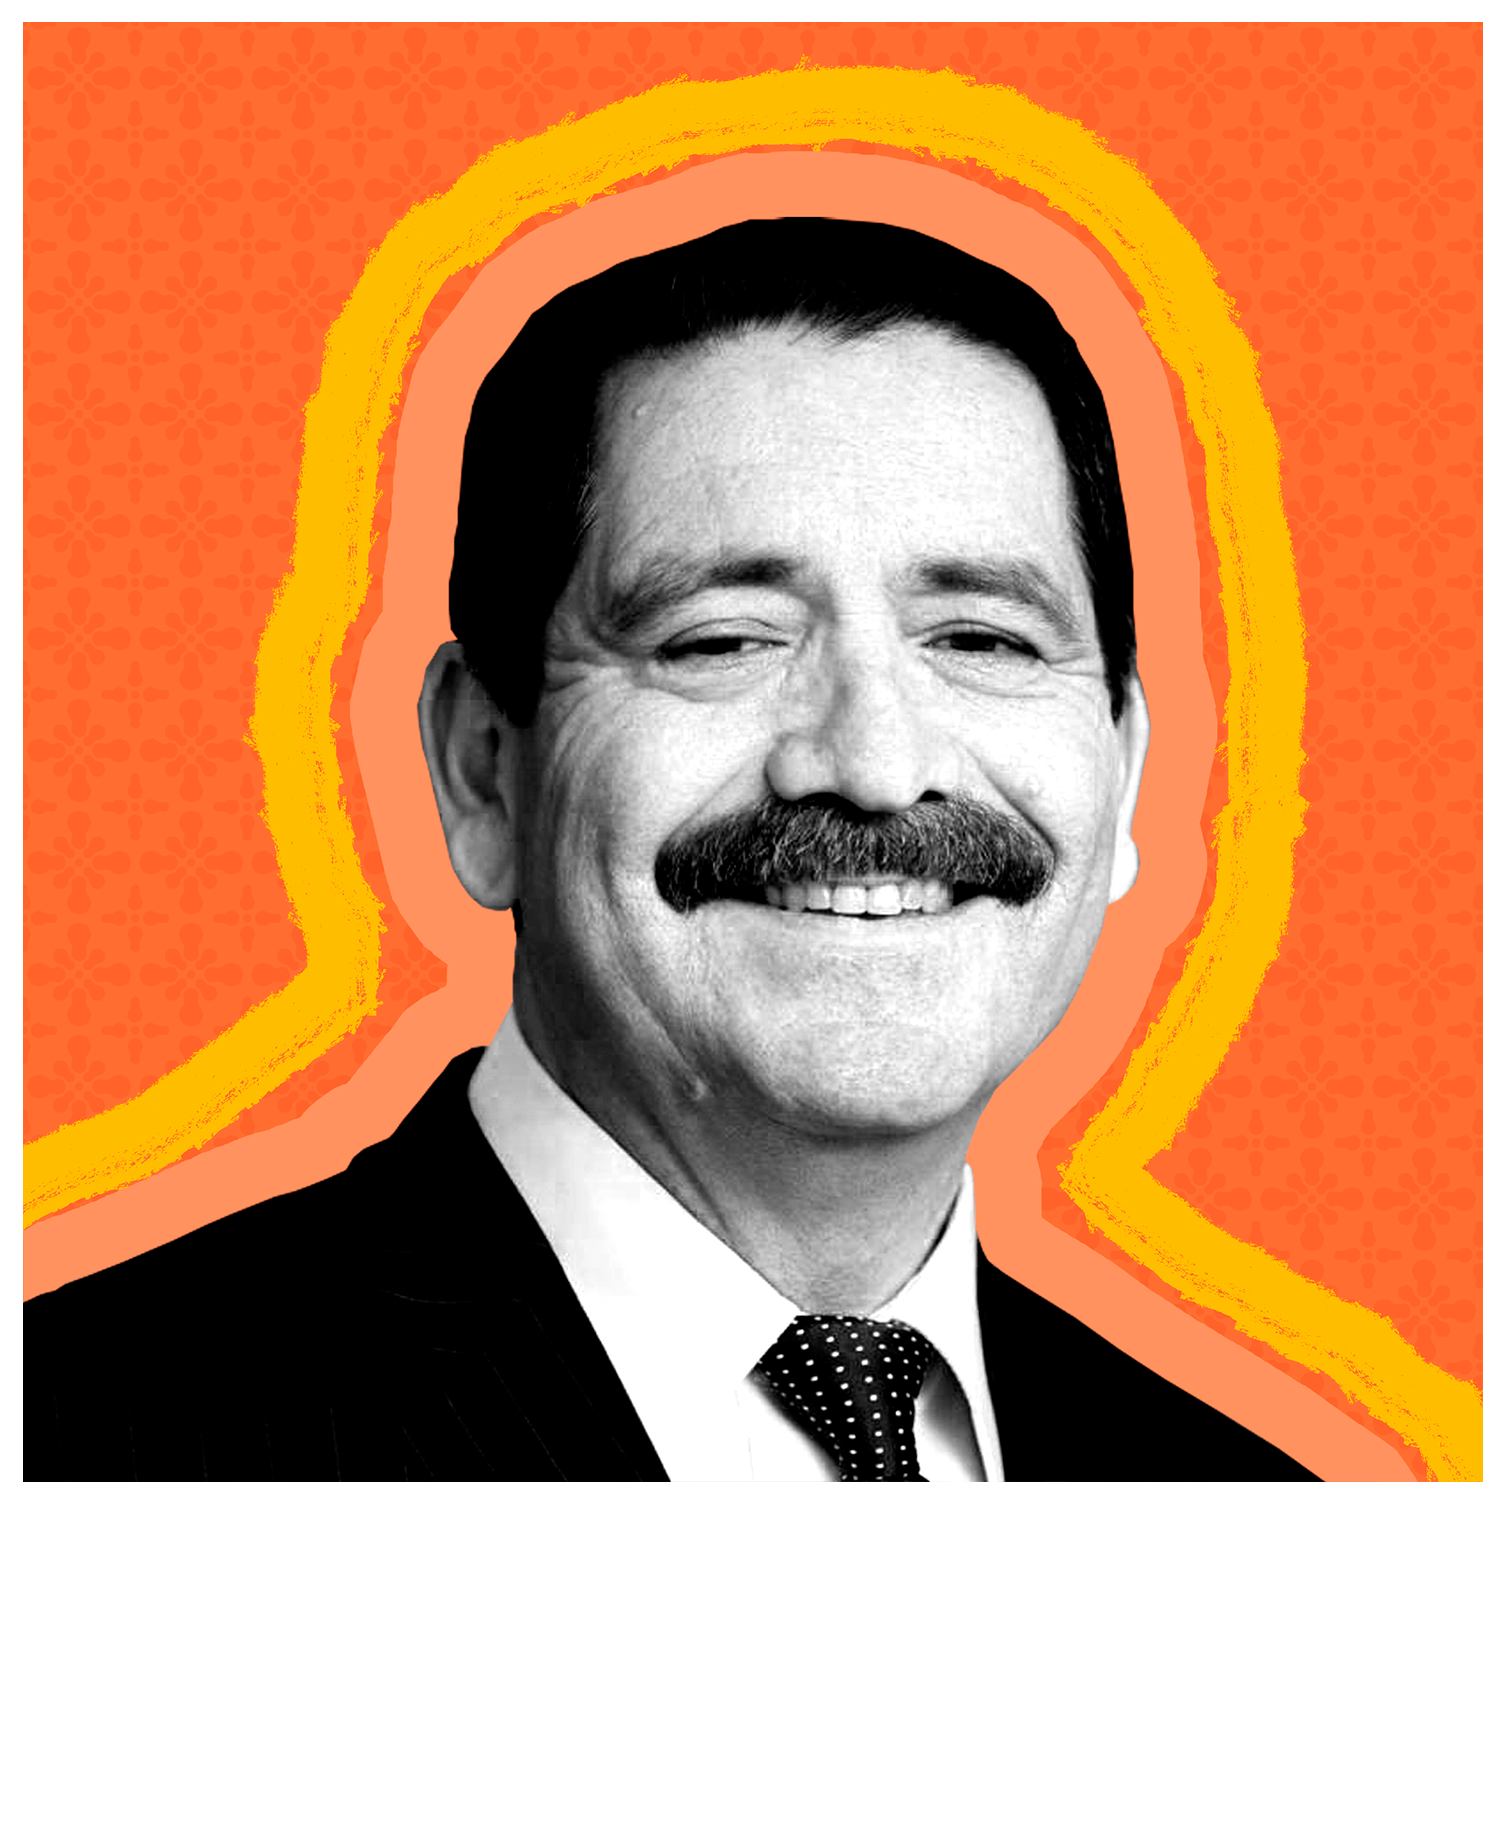 08262019---UWDA-Endorsement-Graphic-ChuyGarcia-Slide-v2